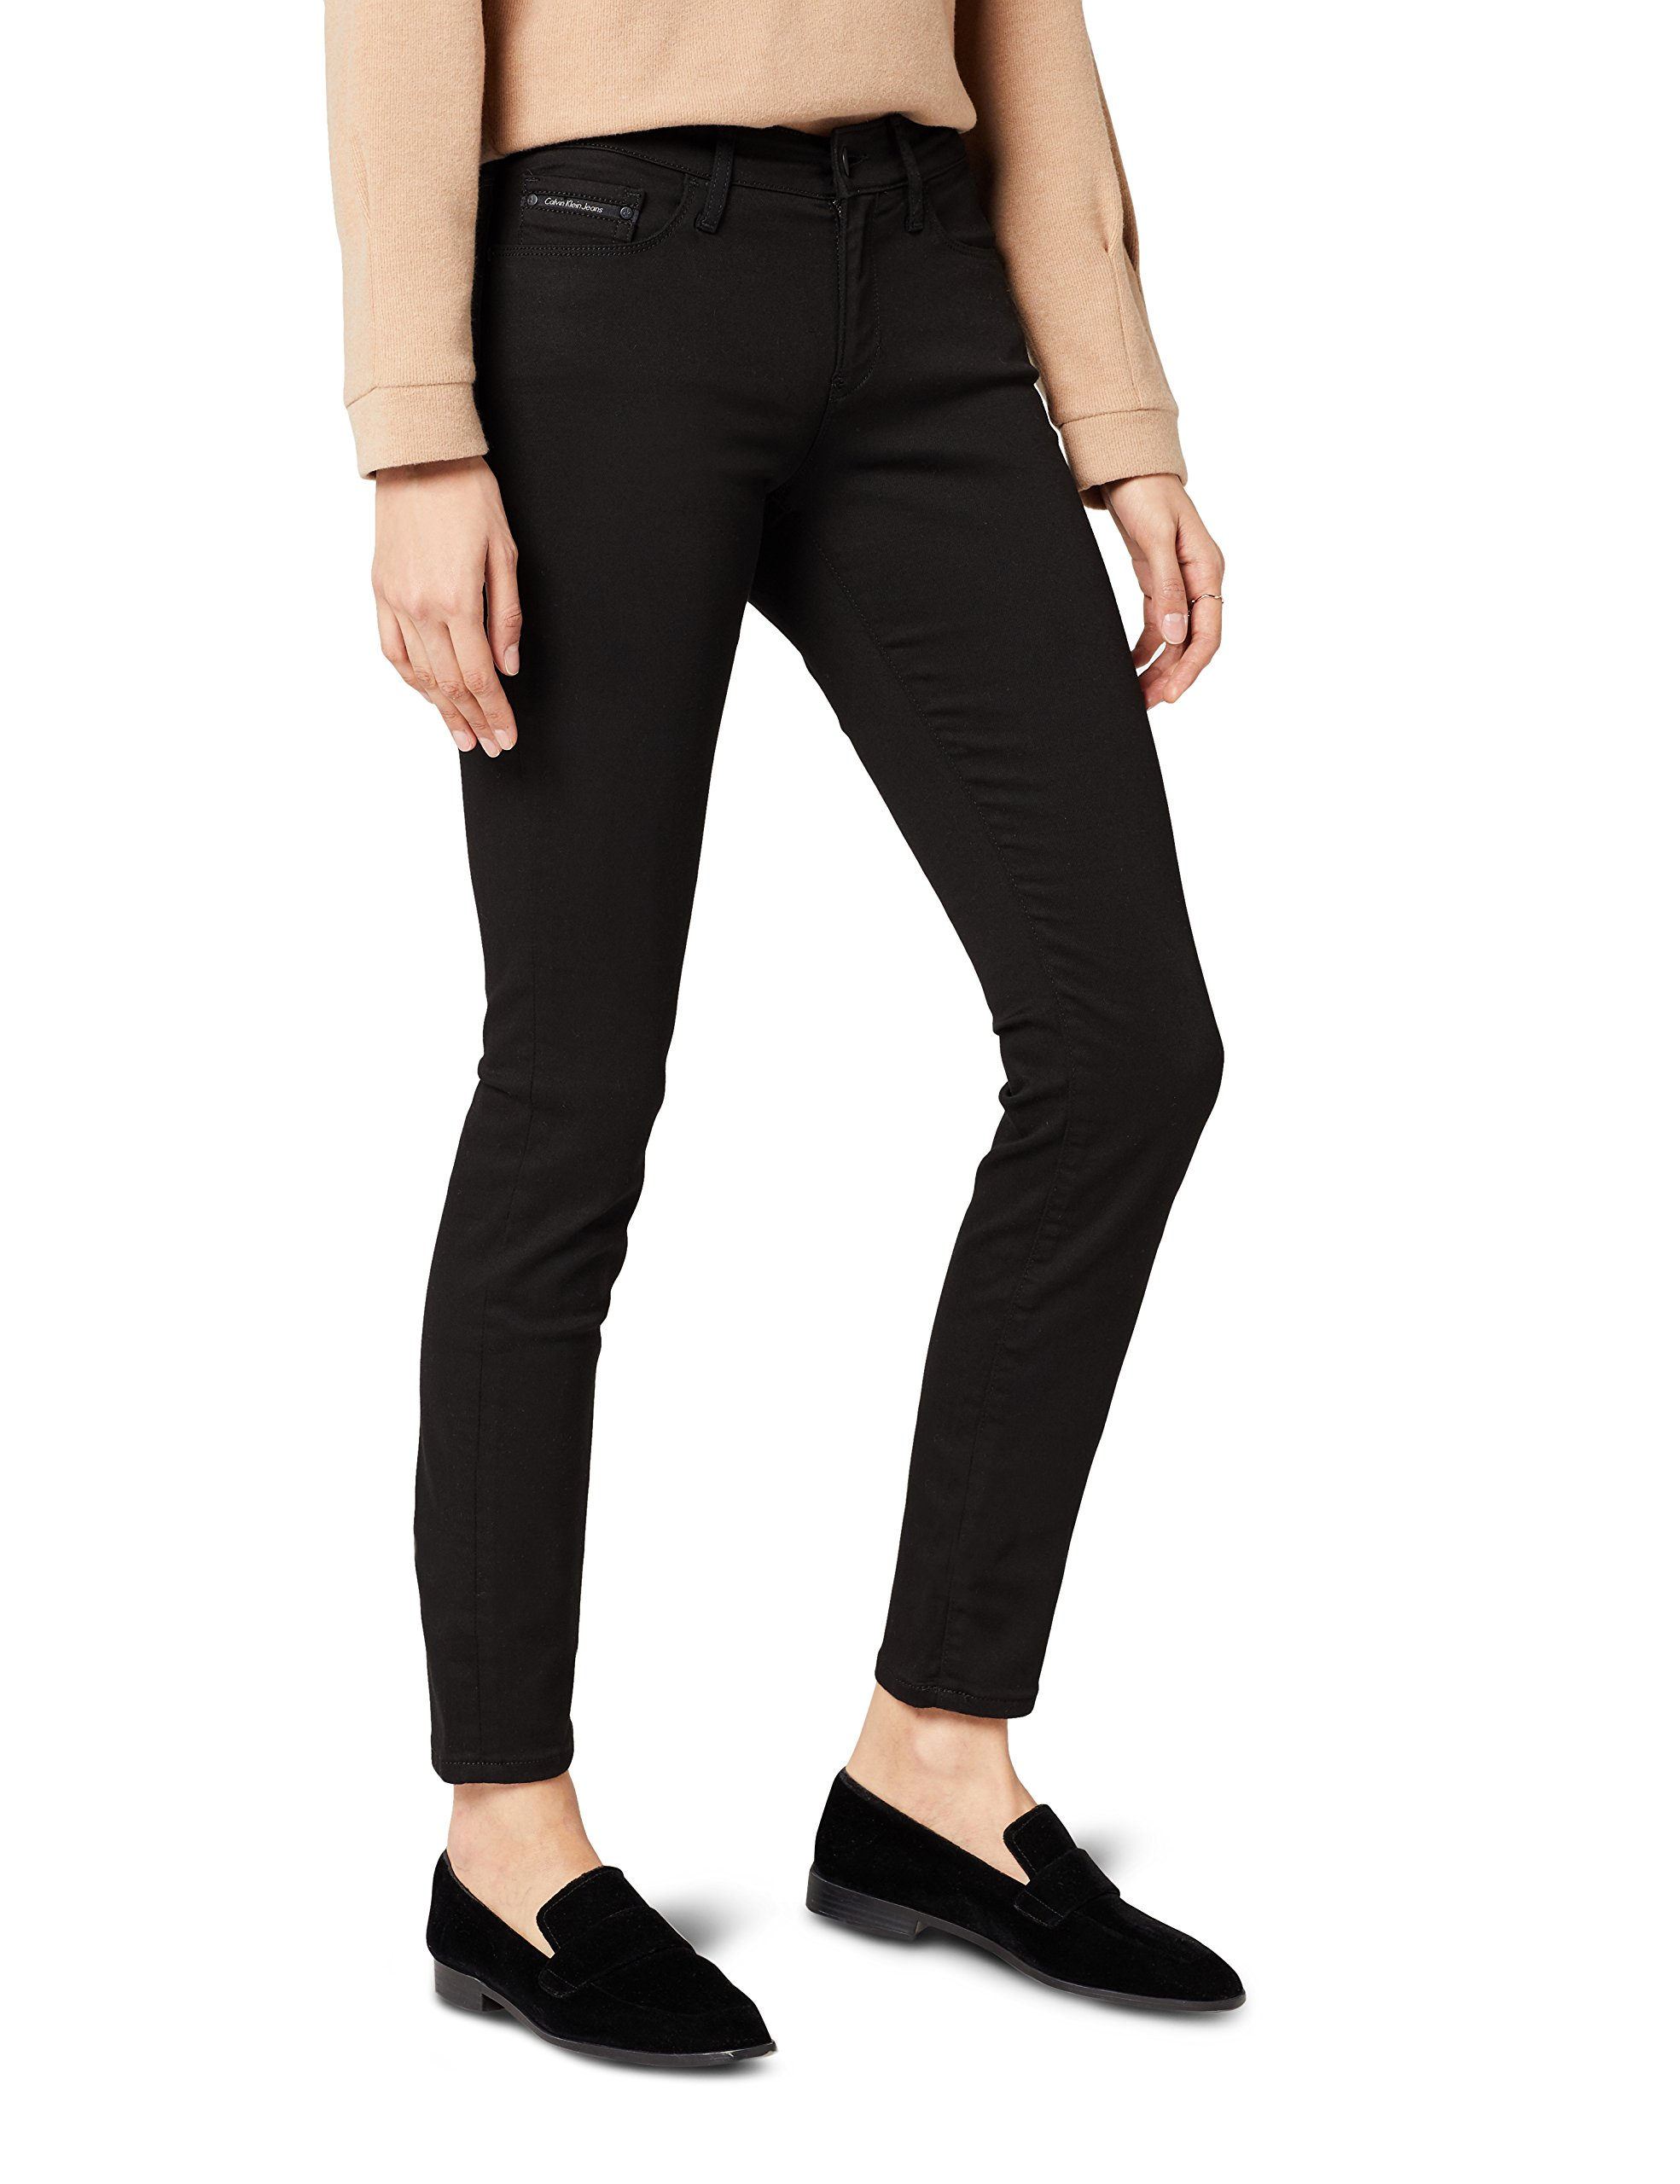 Klein Black Fabricant3428Femme Skinny Calvin pop l34taille Jeans Rise Mid JeansNoirW28 srQthdxCB